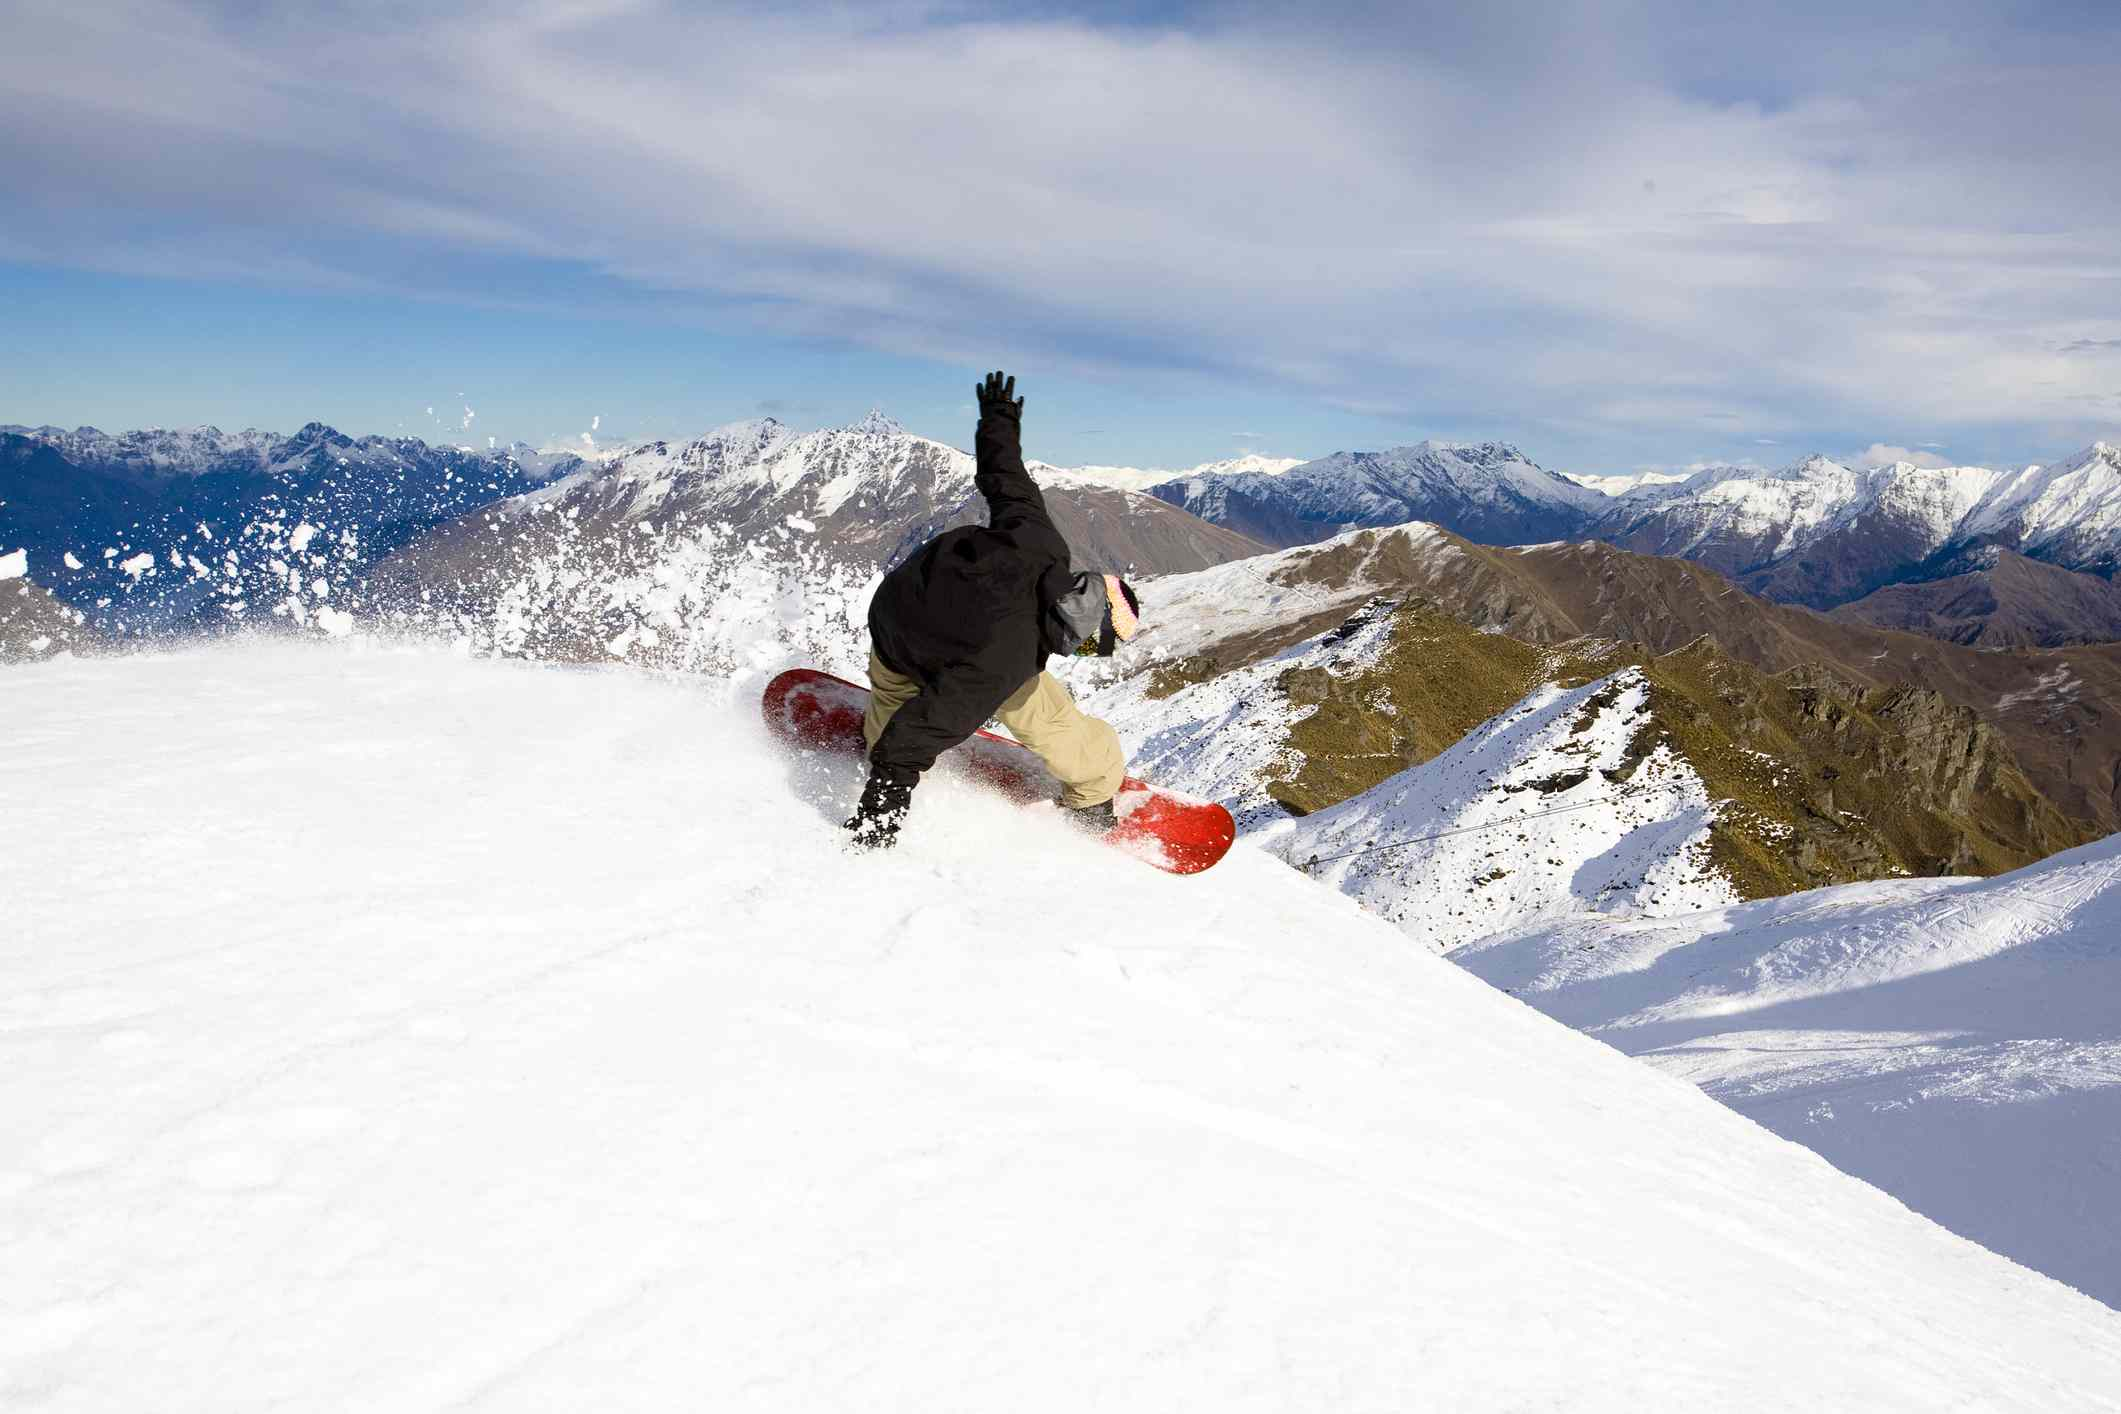 snowboarder on snow covered slope in snowy mountains